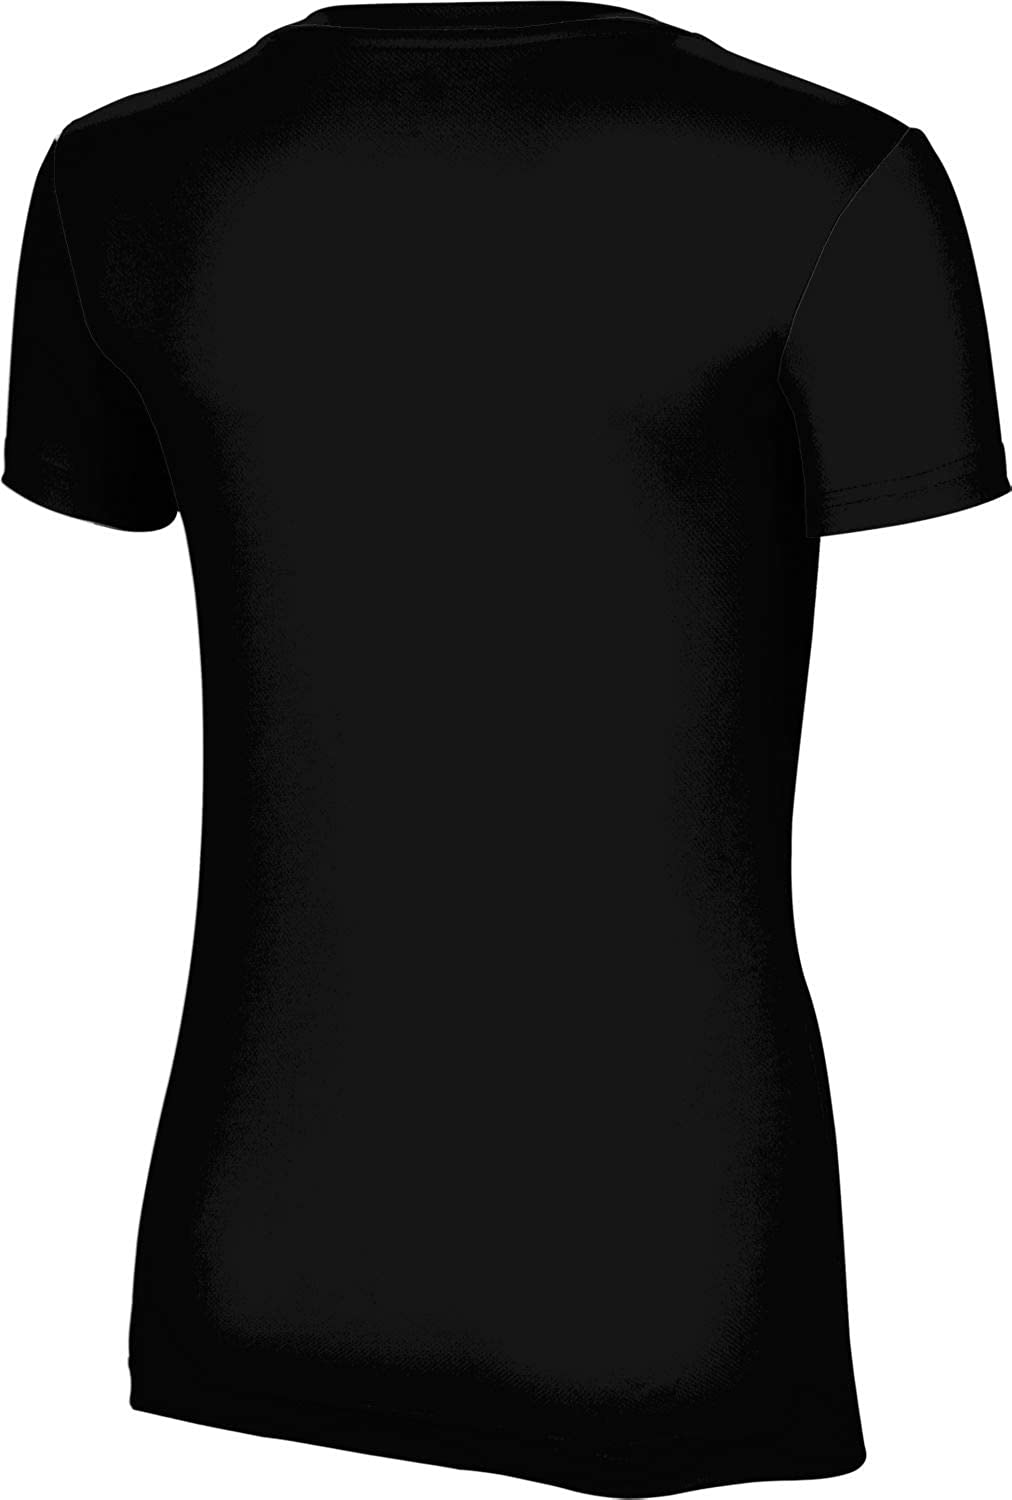 Solid Army Army Casual Wear Girls Performance T-Shirt ProSphere U.S